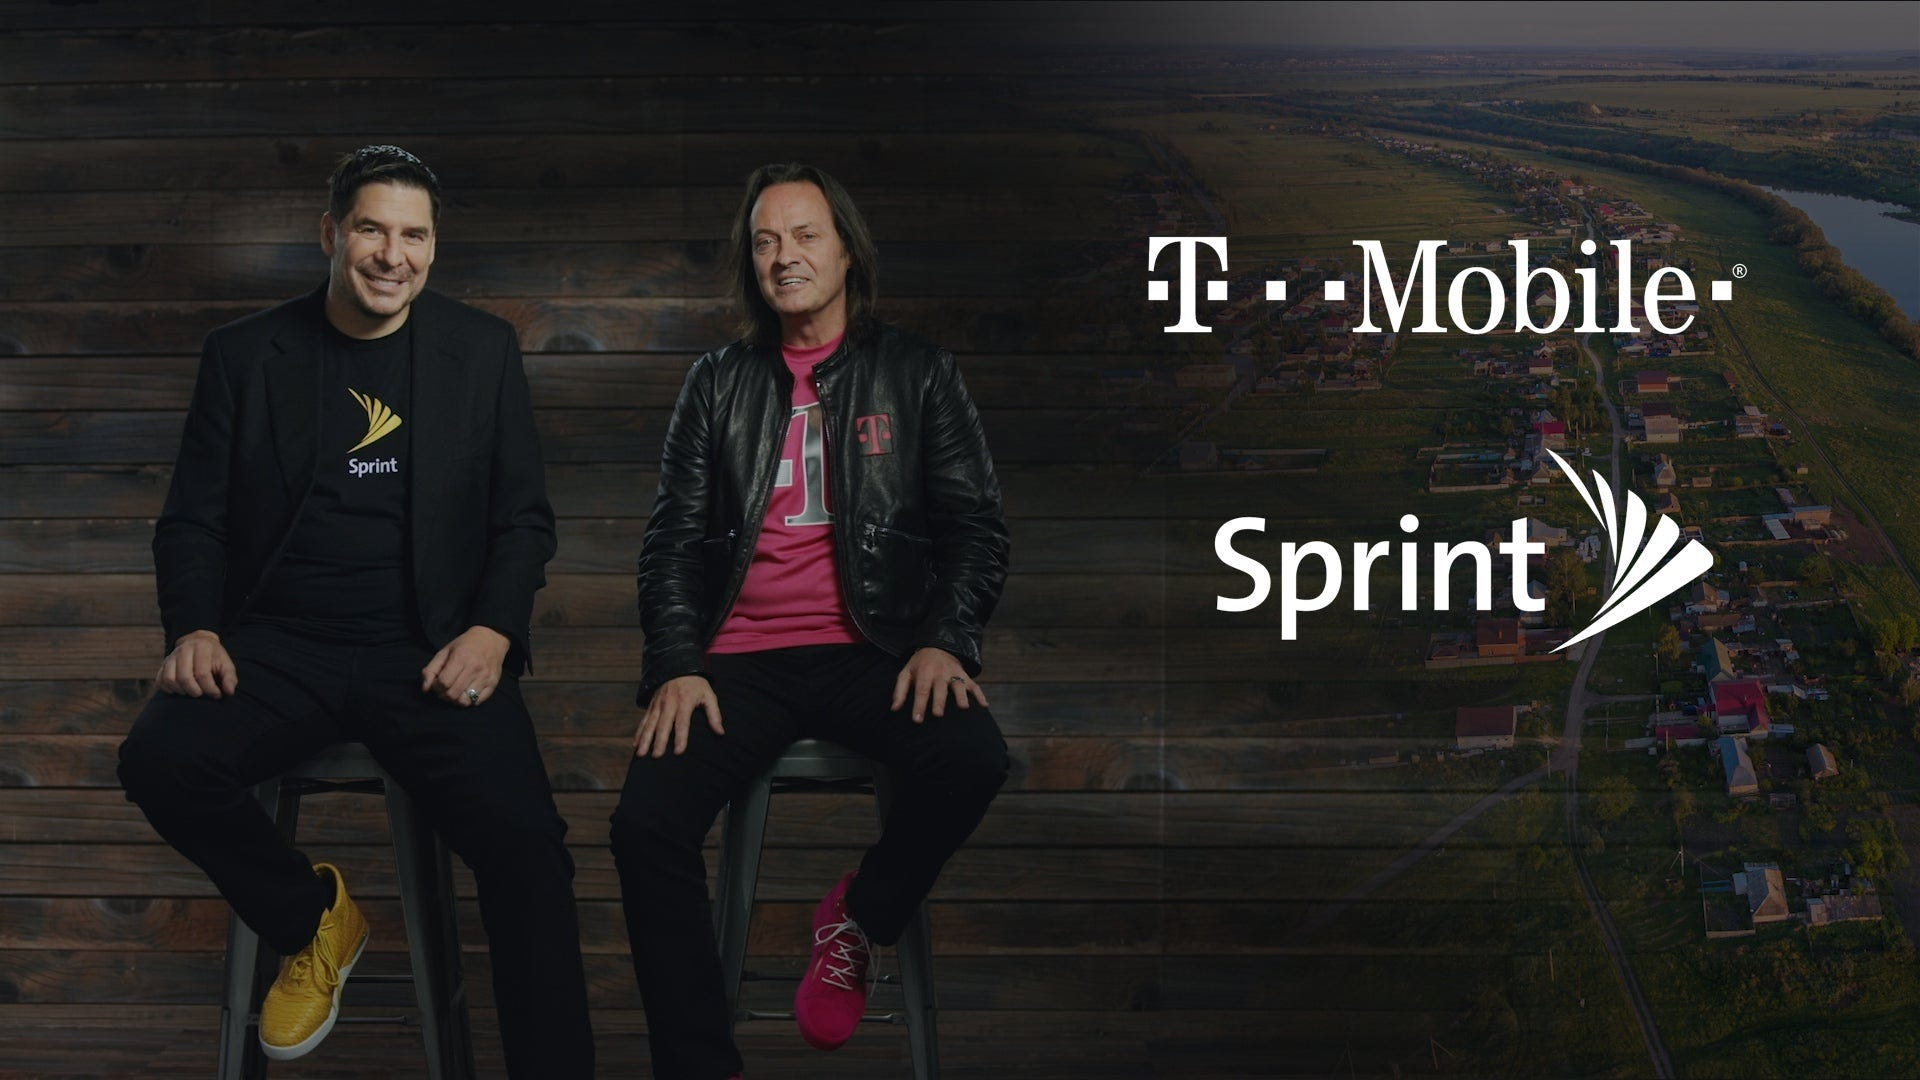 T Mobile And Sprint Are Now One Ceo John Legere Steps Down Early